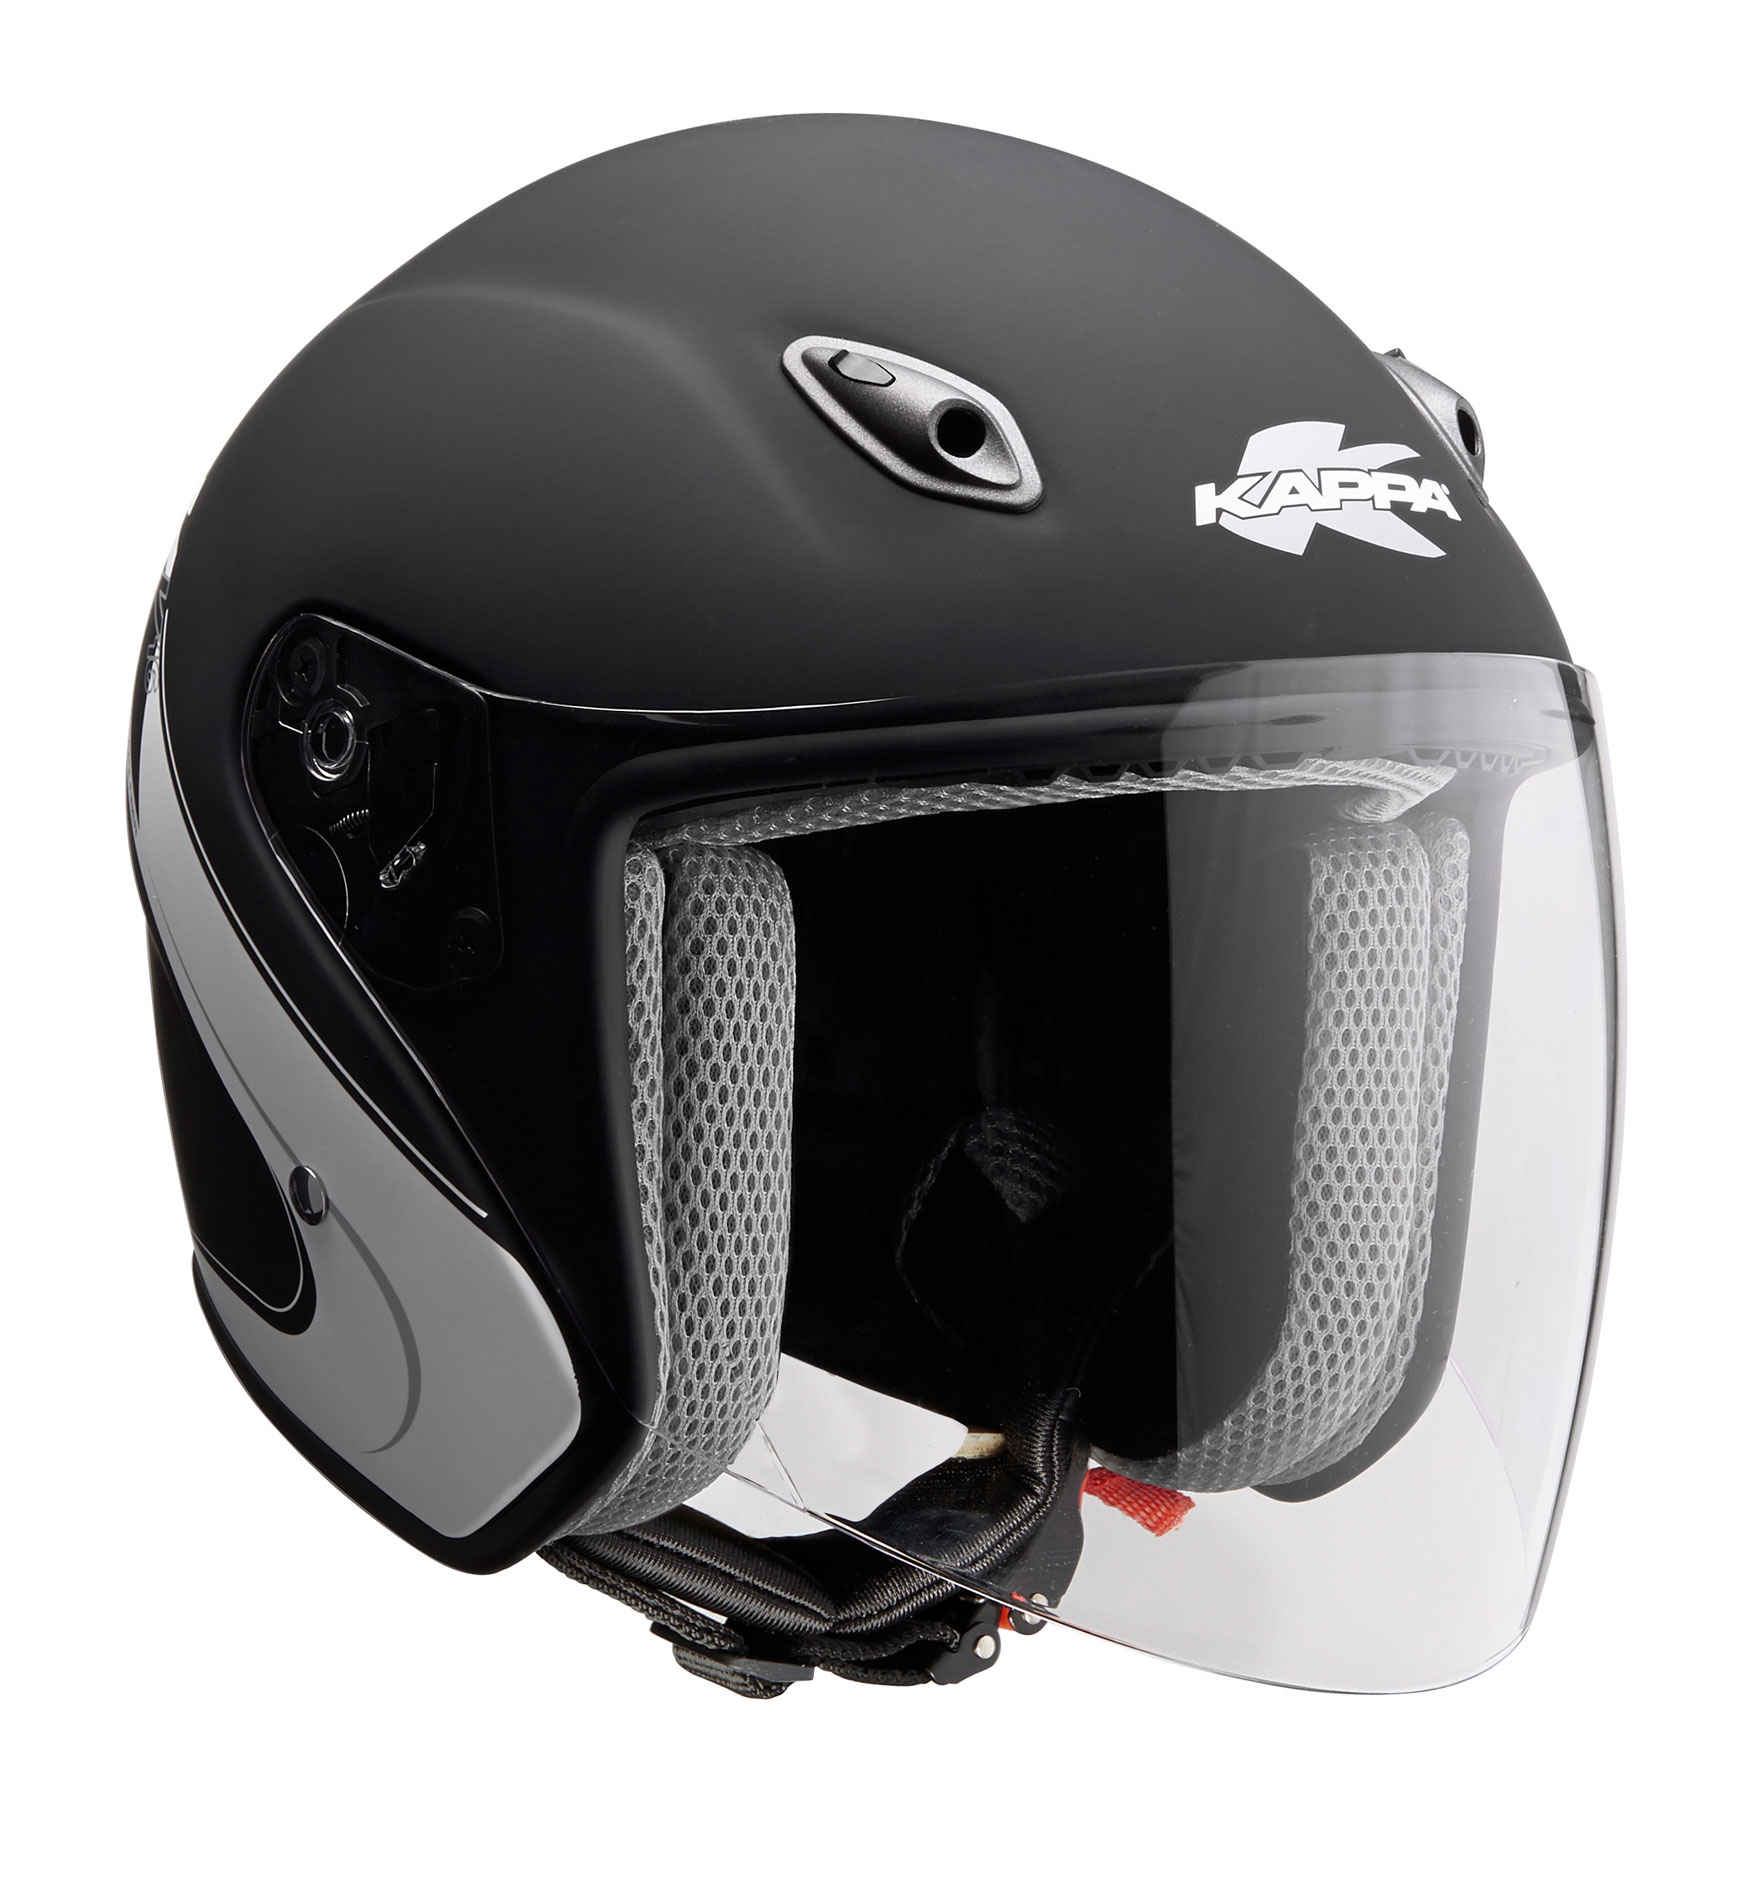 Casco Jet KV16 by KAPPA